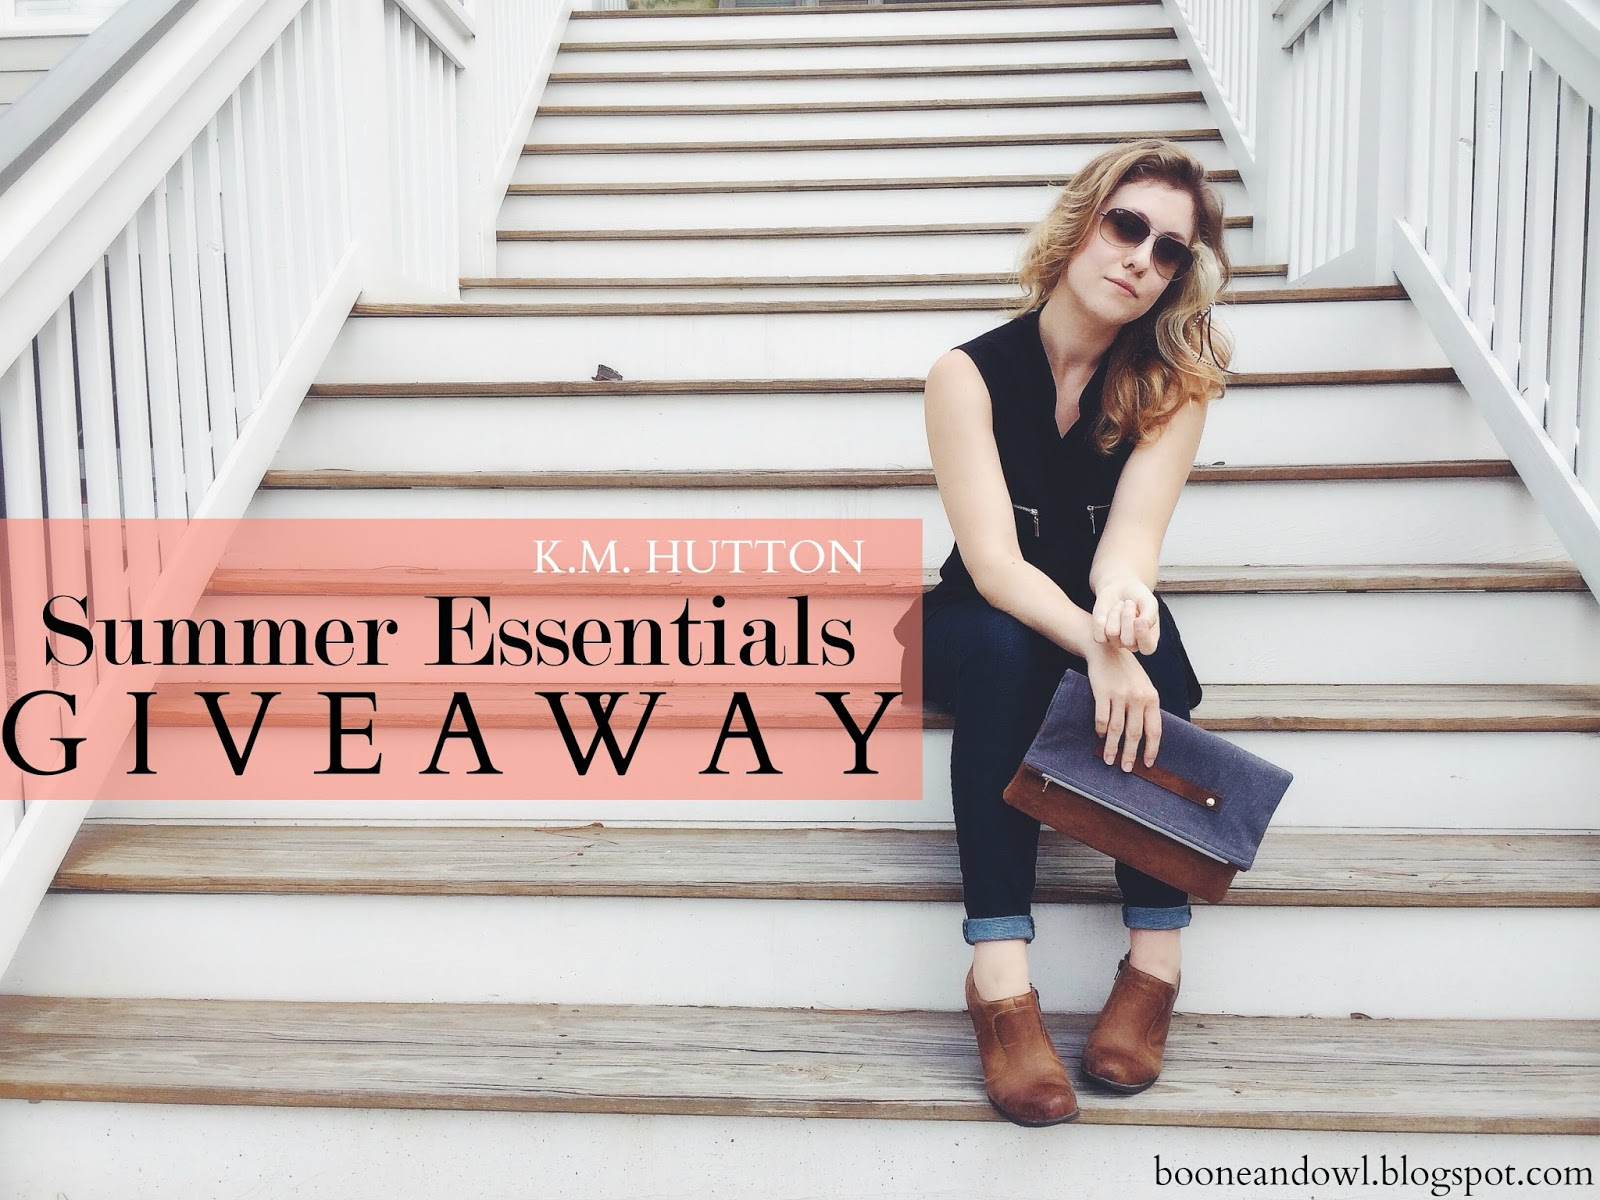 Summer Essentials giveaway, K.M. Hutton, summer giveaways, fold over clutches